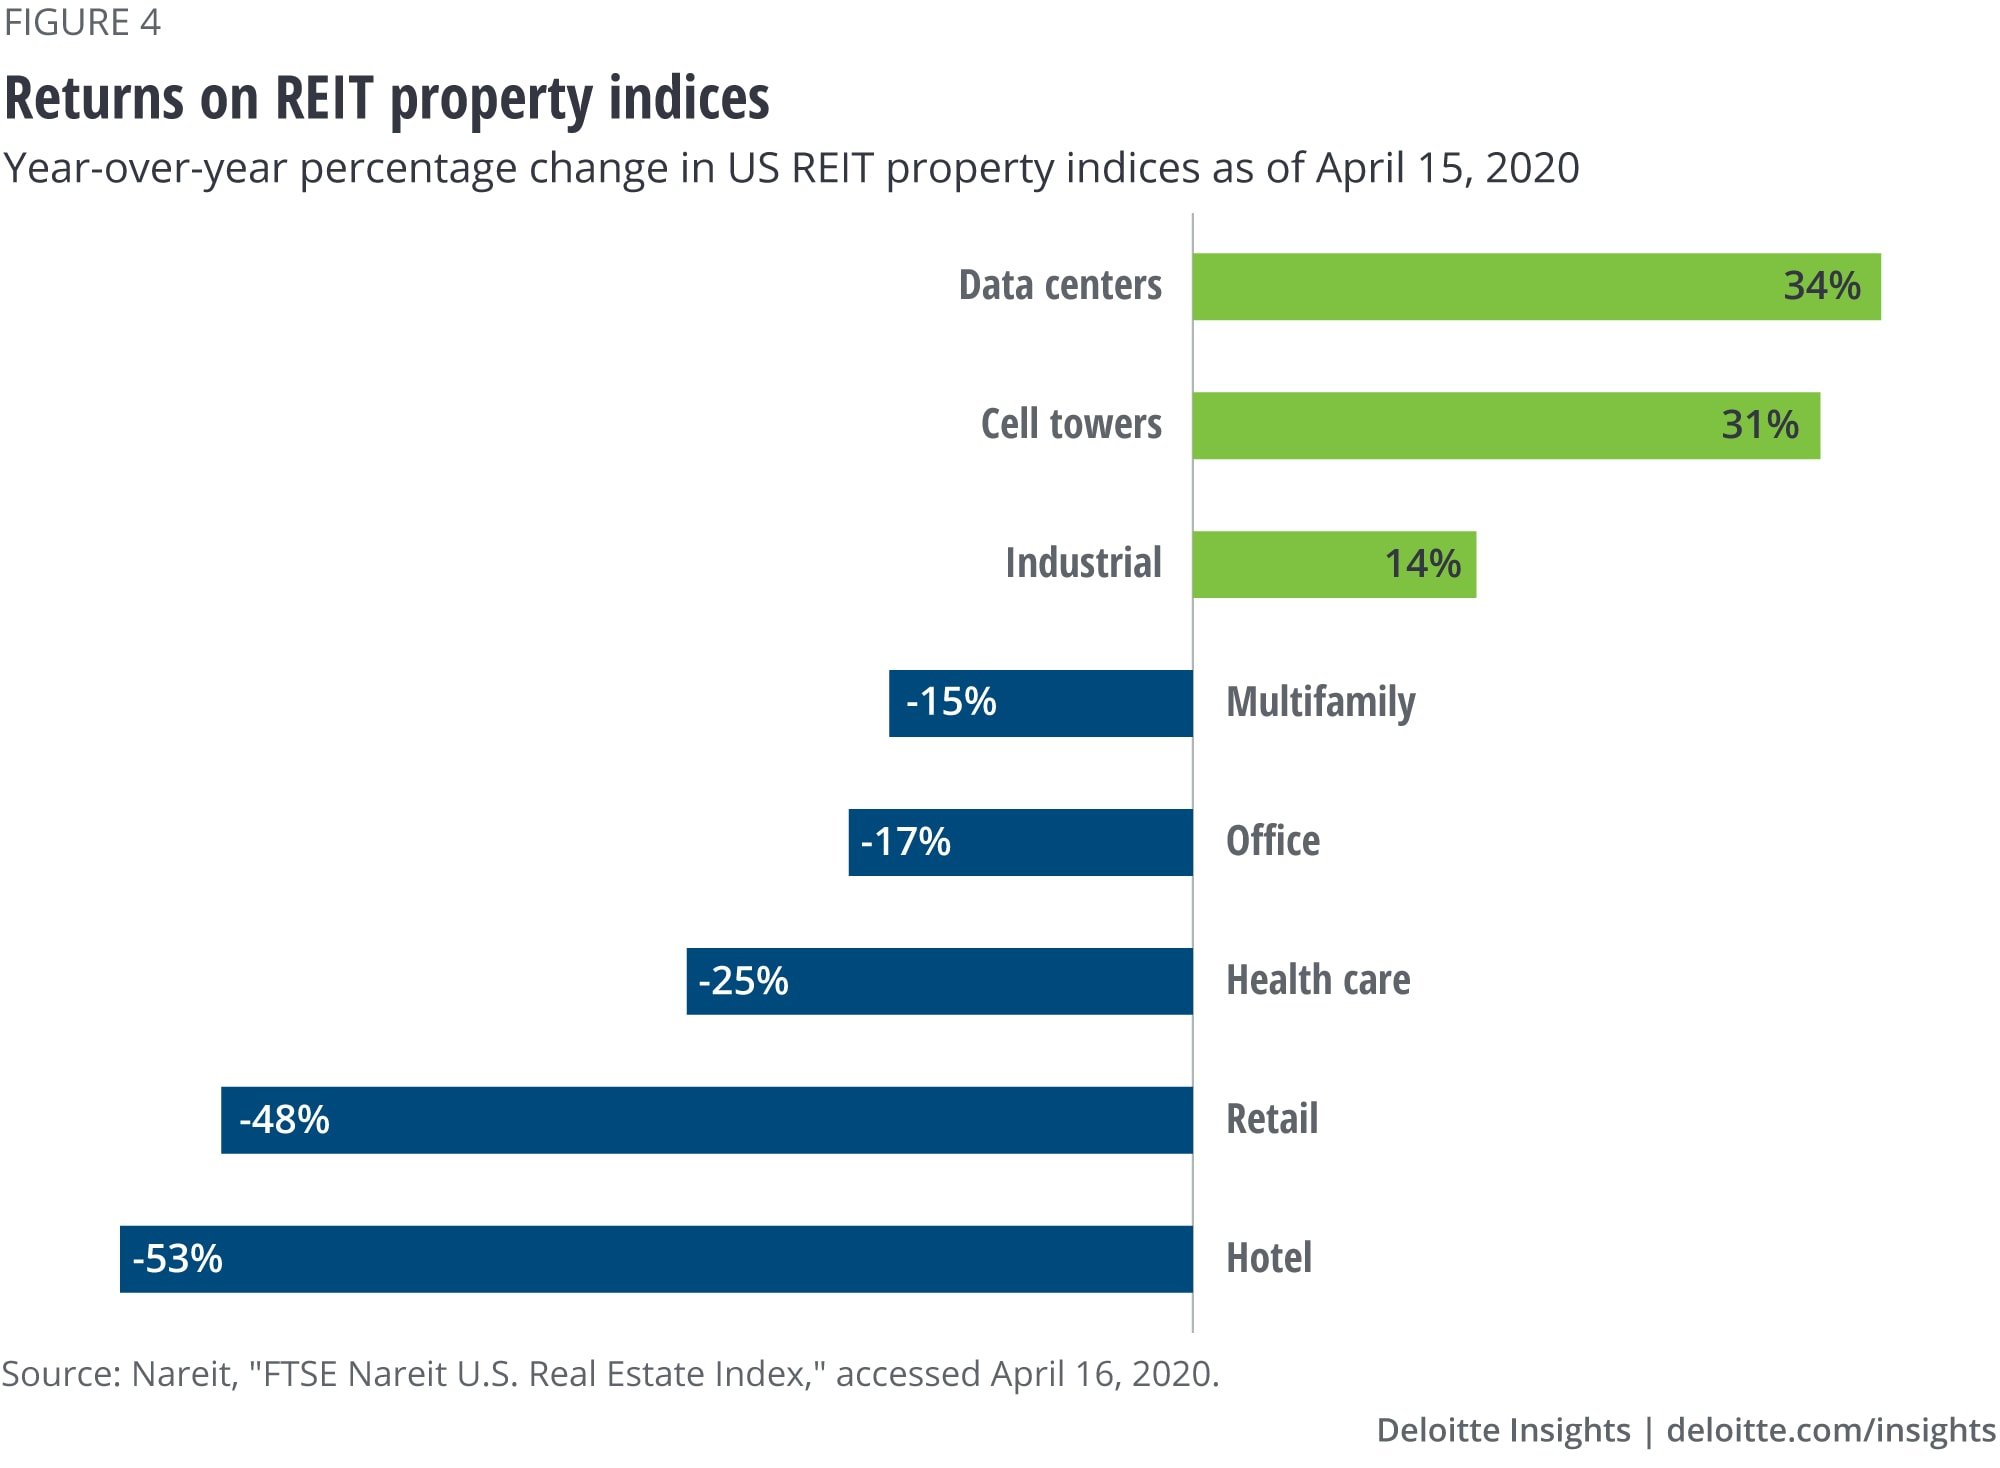 COVID-19 implications for commercial real estate   Deloitte Insights